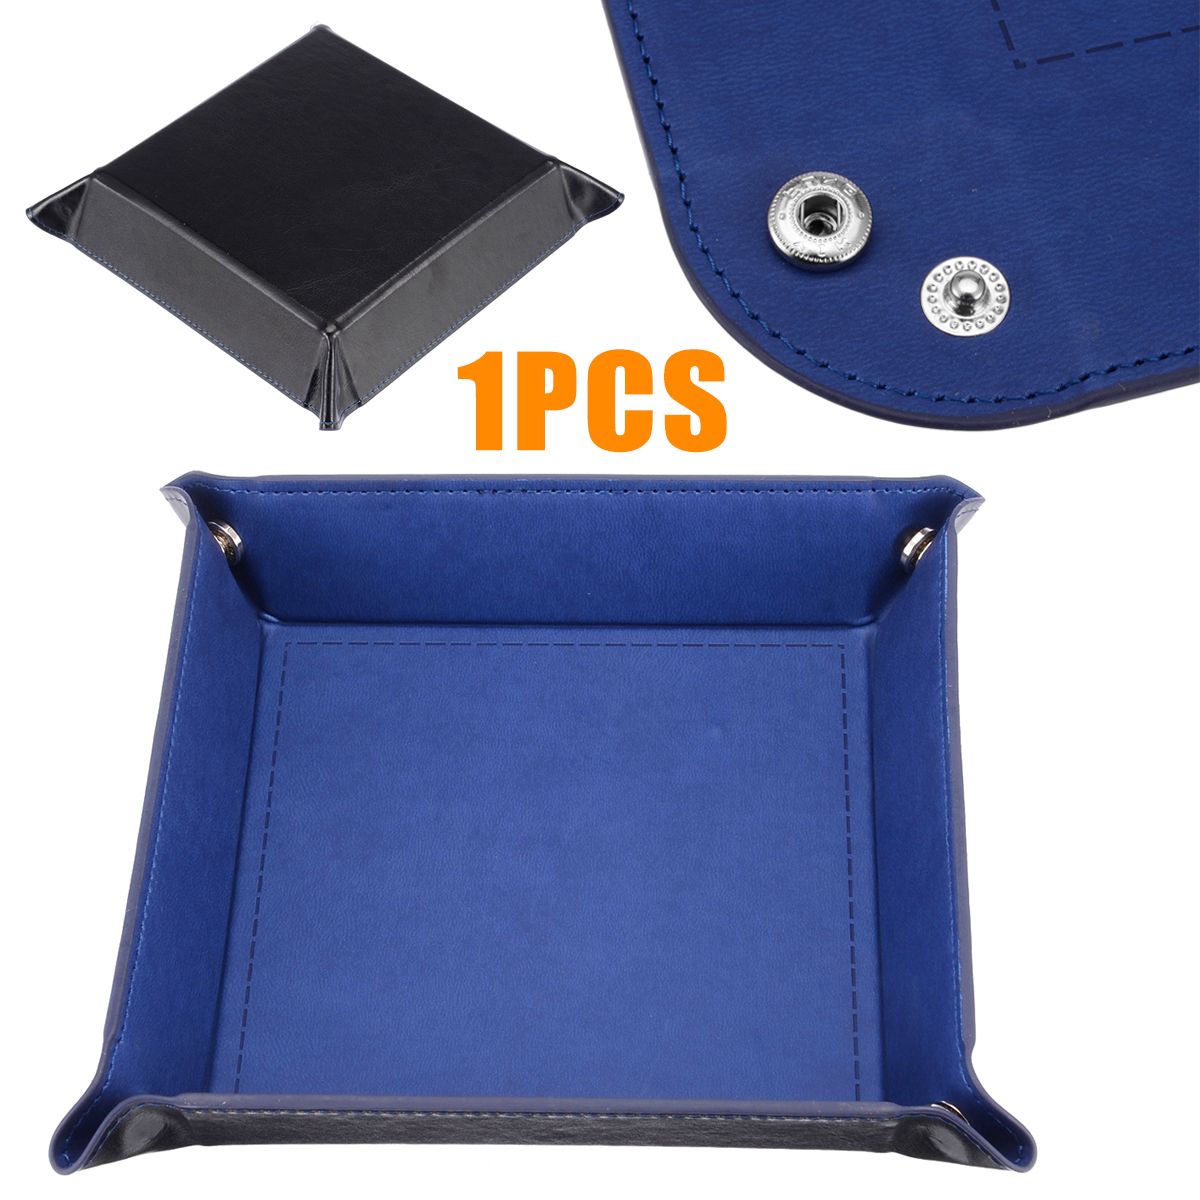 High Quality New 1pc Blue Dice Foldable Storage Box Dice Table Games Key Wallet Coin Box Tray Desktop Storage Box